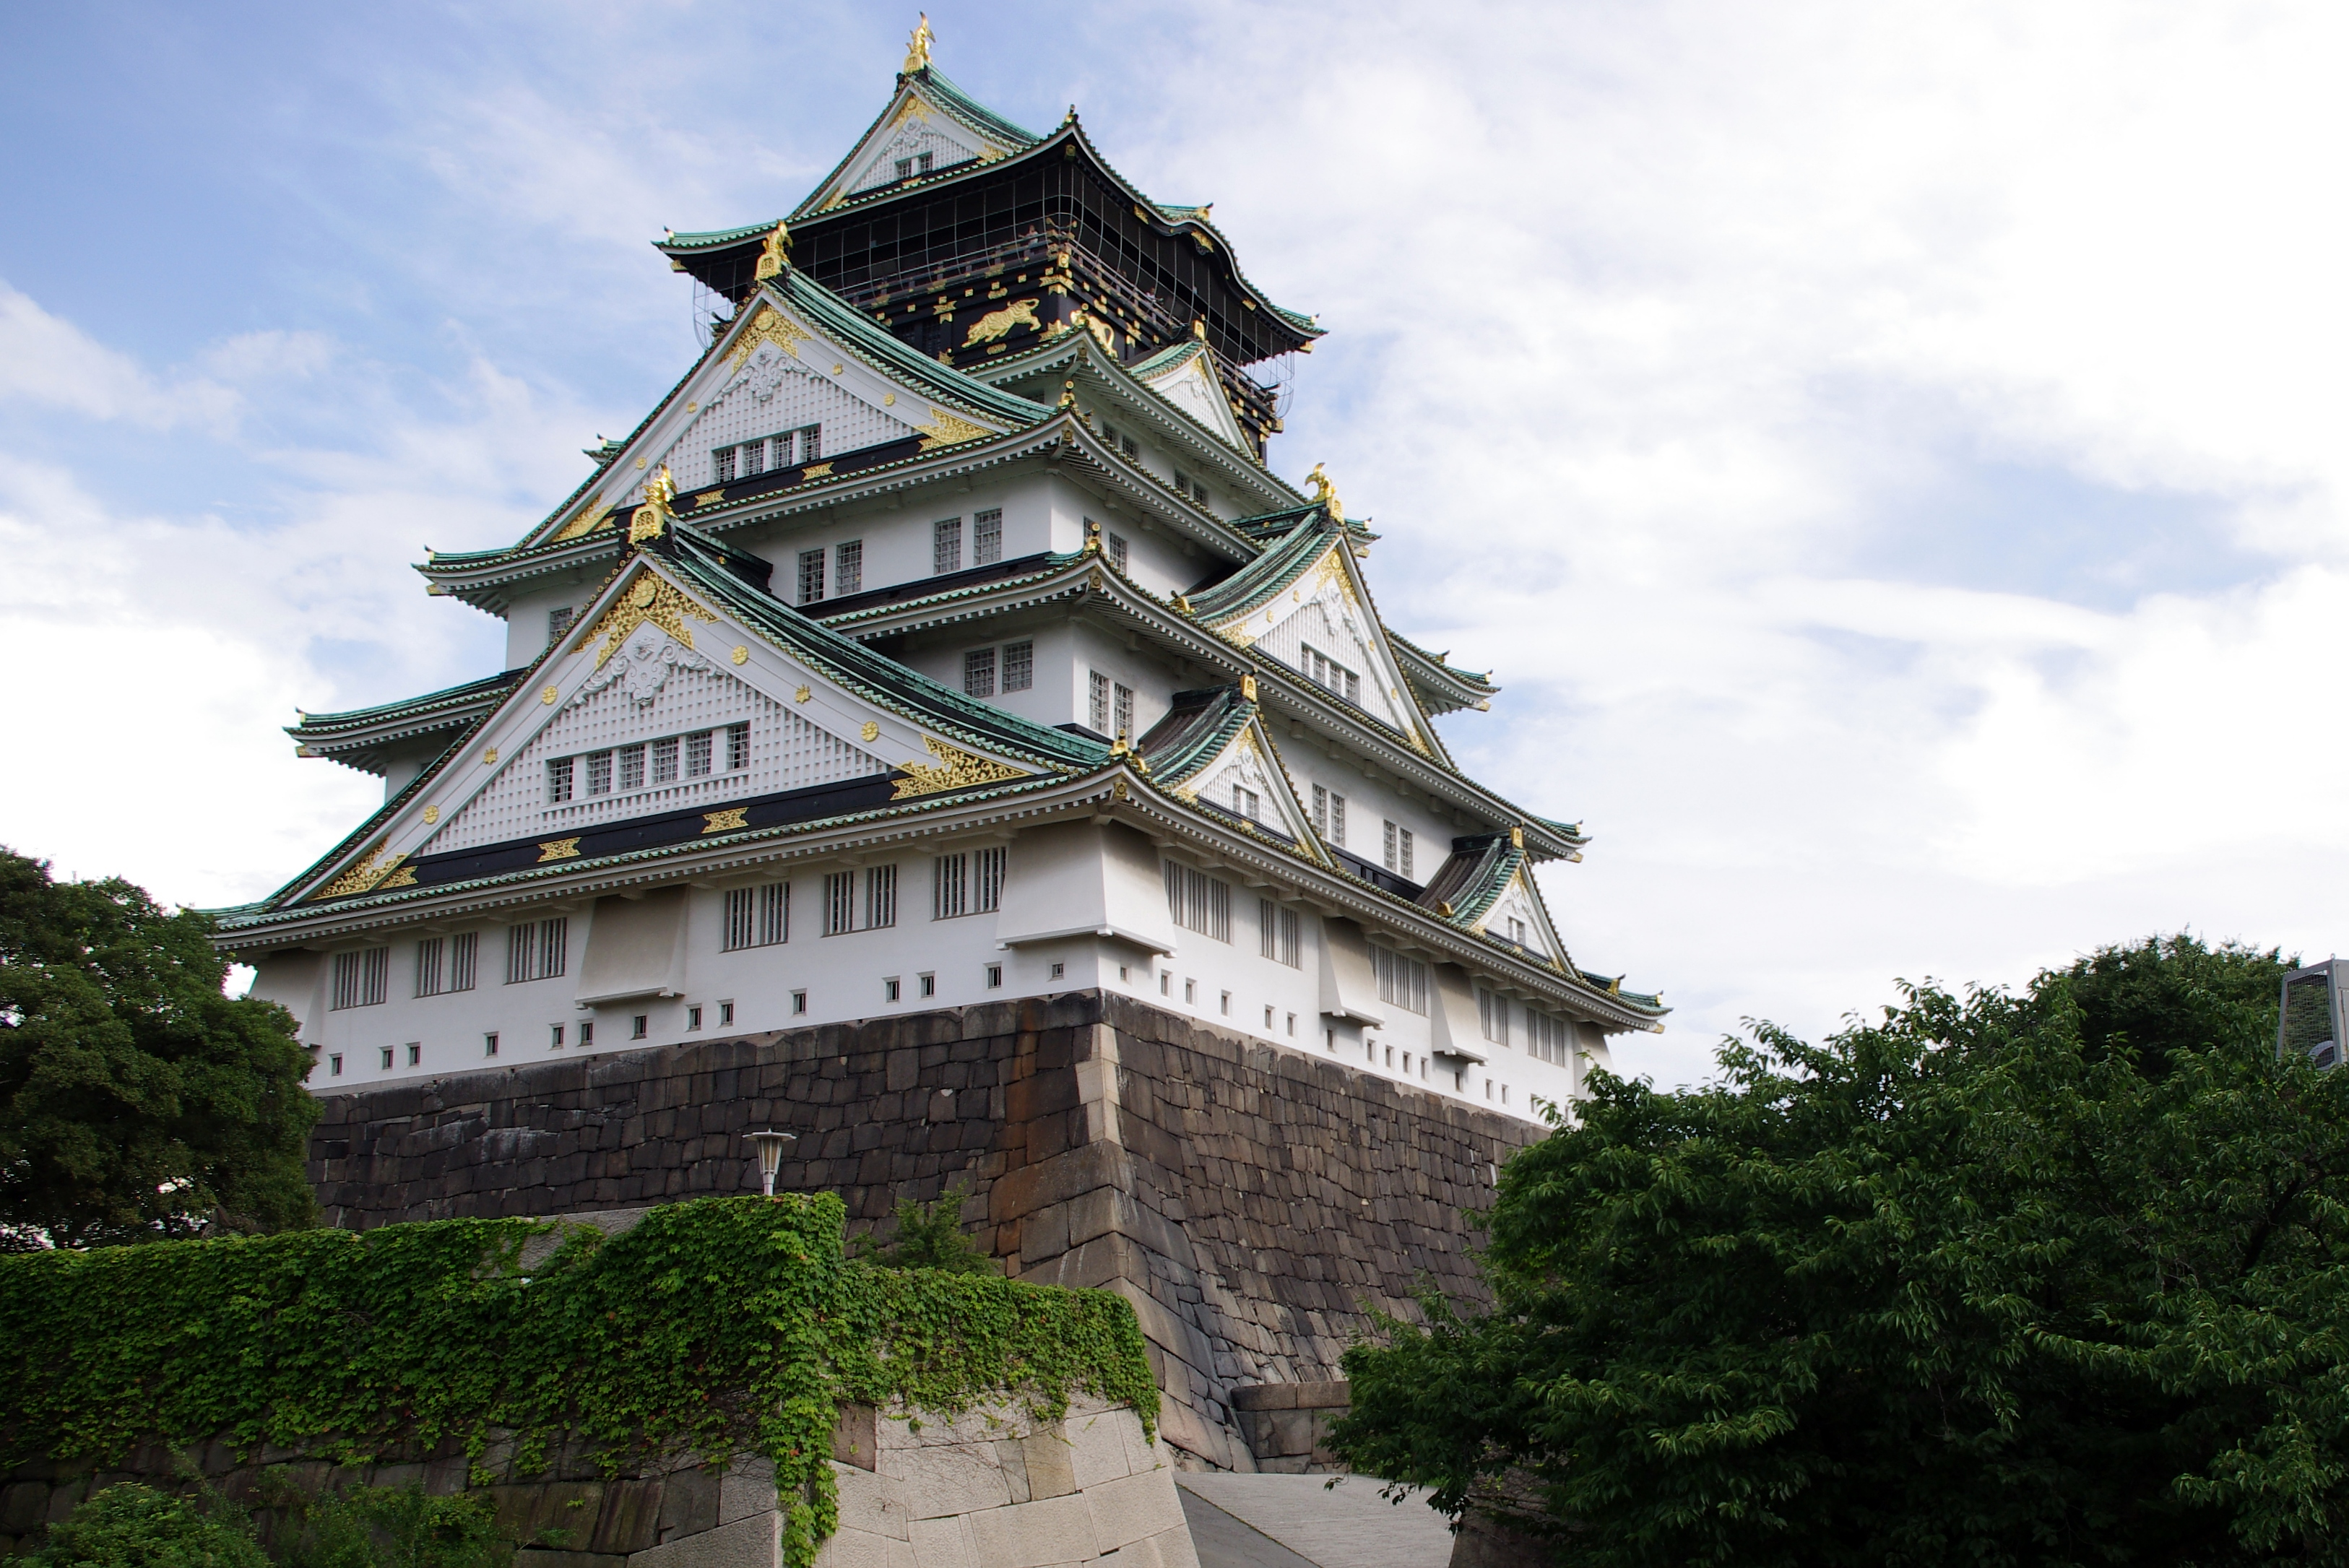 things to do in osaka - Tour the Osaka Castle